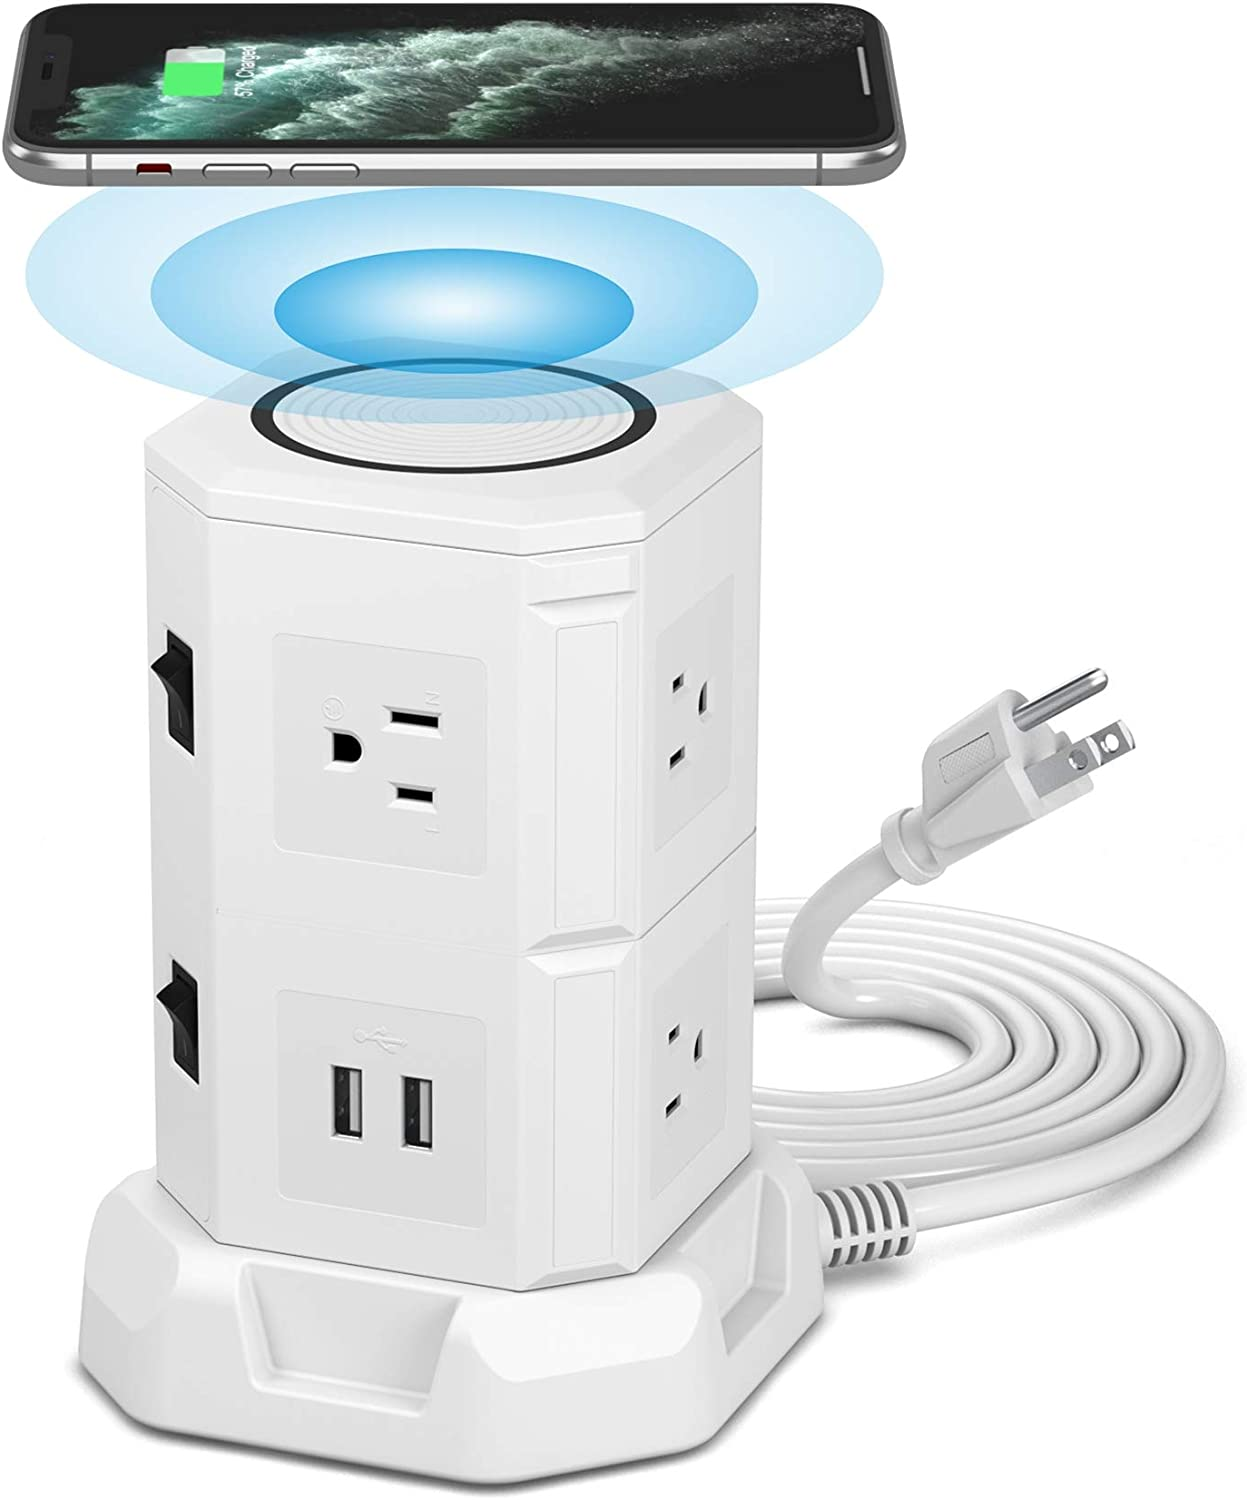 BTU Surge Protector Electric Charging Station, Power Strip Tower Wireless Charger + 7 Outlet Plugs + 2 USB Ports + 6.5ft Extension Cord Universal Socket PC Laptops Phone (White)